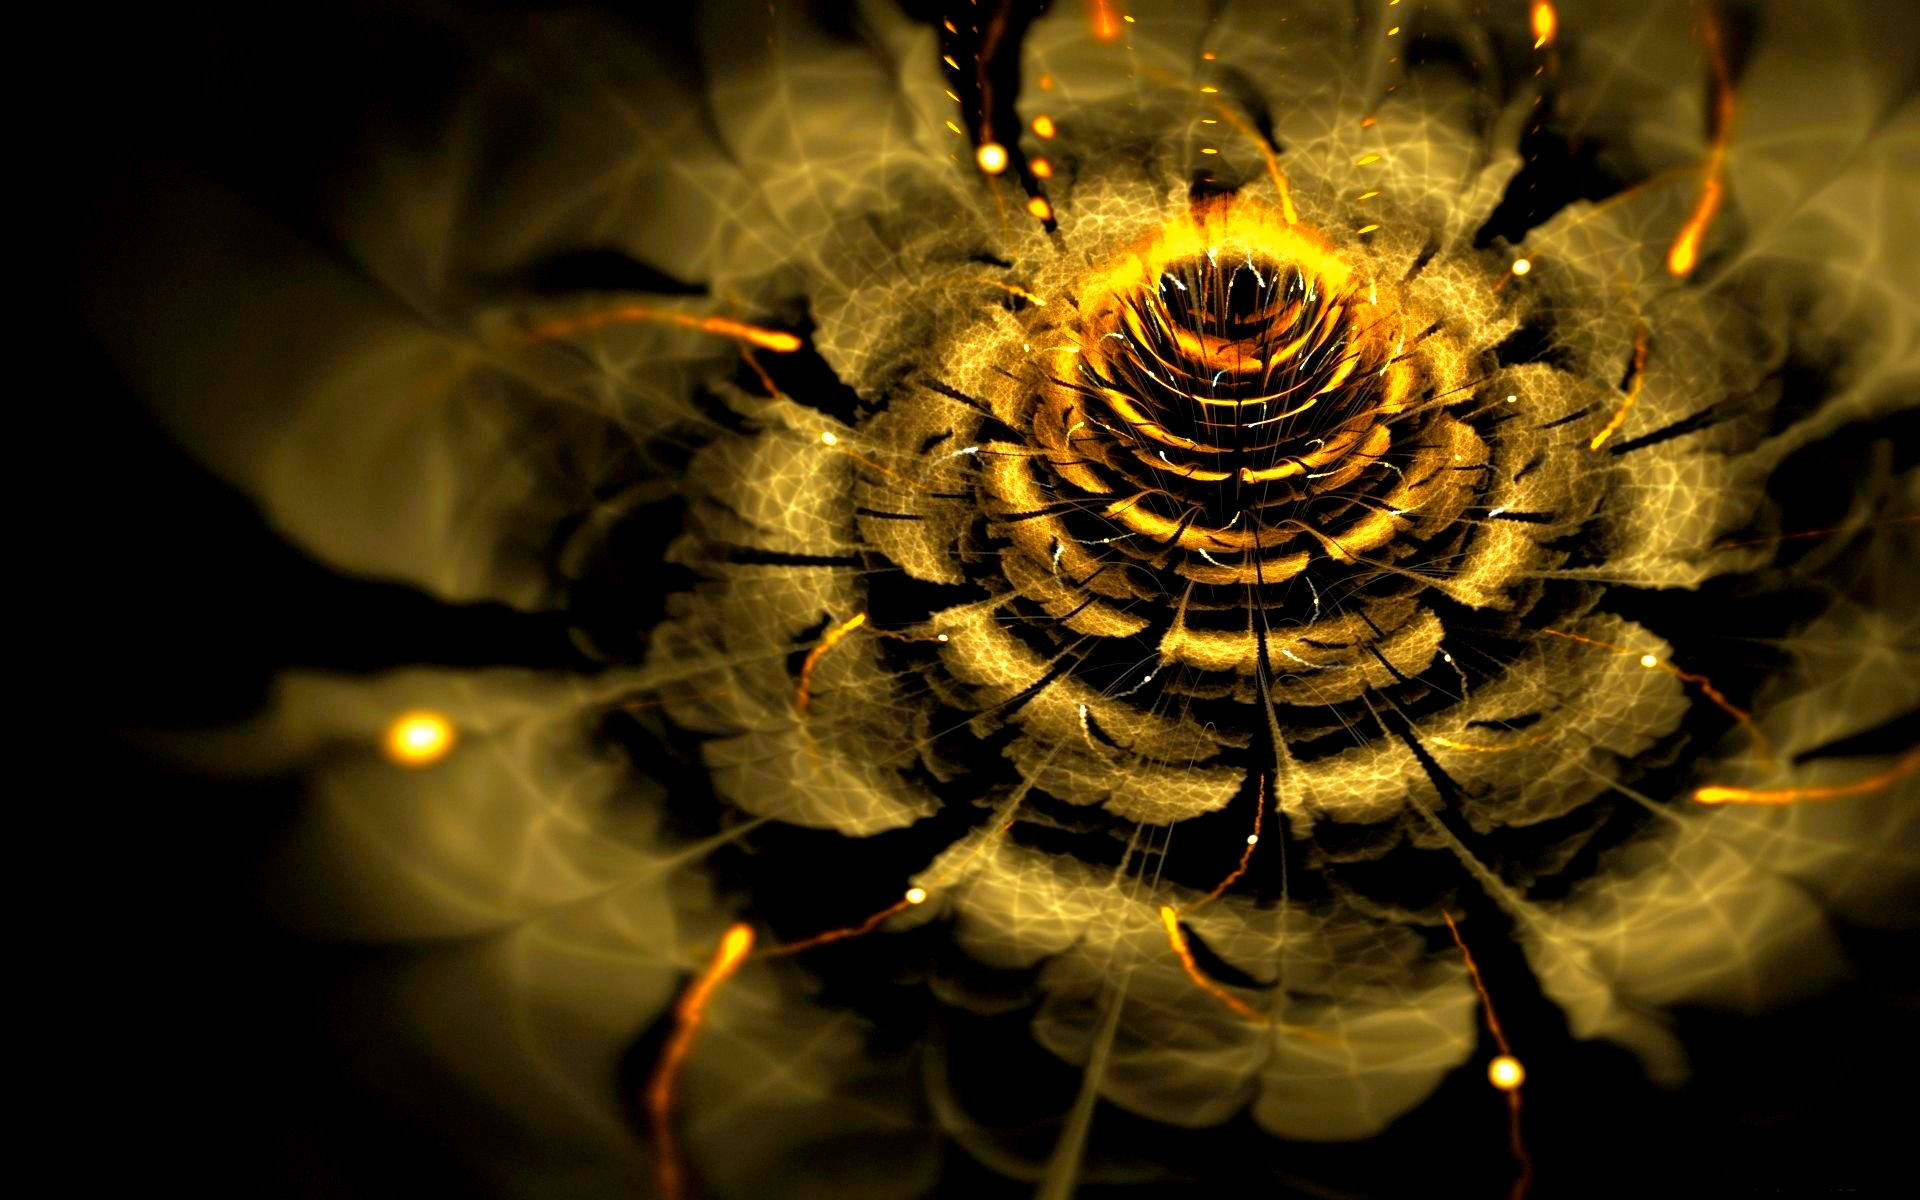 GOLDEN FLOWER wallpaper   ForWallpapercom 1920x1200